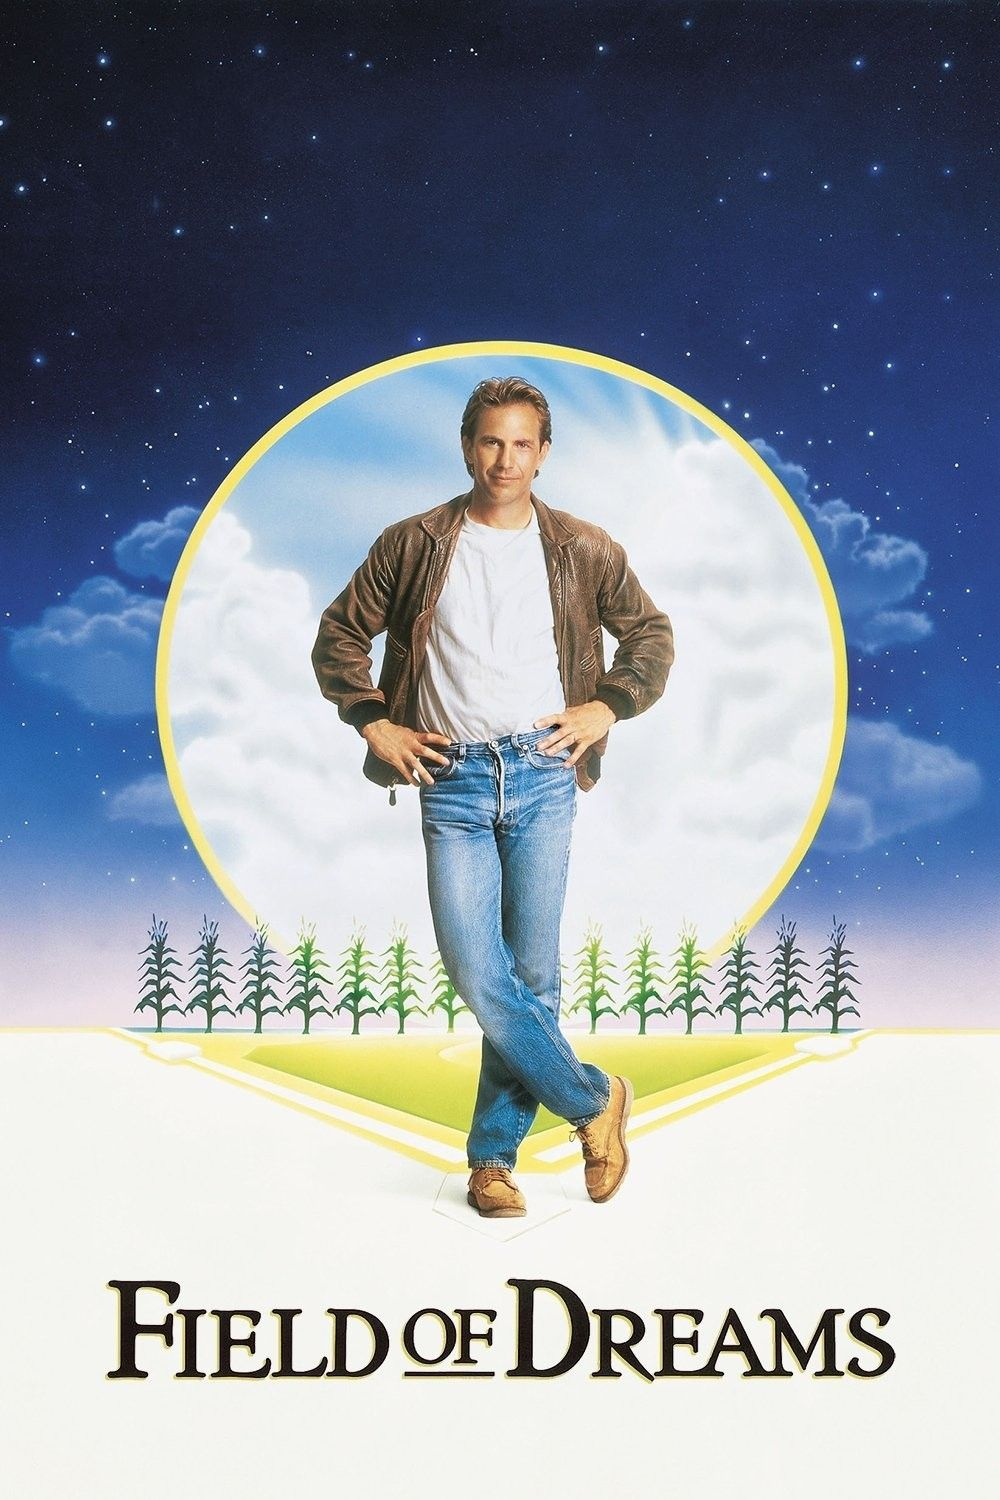 Field of dreams with images field of dreams free